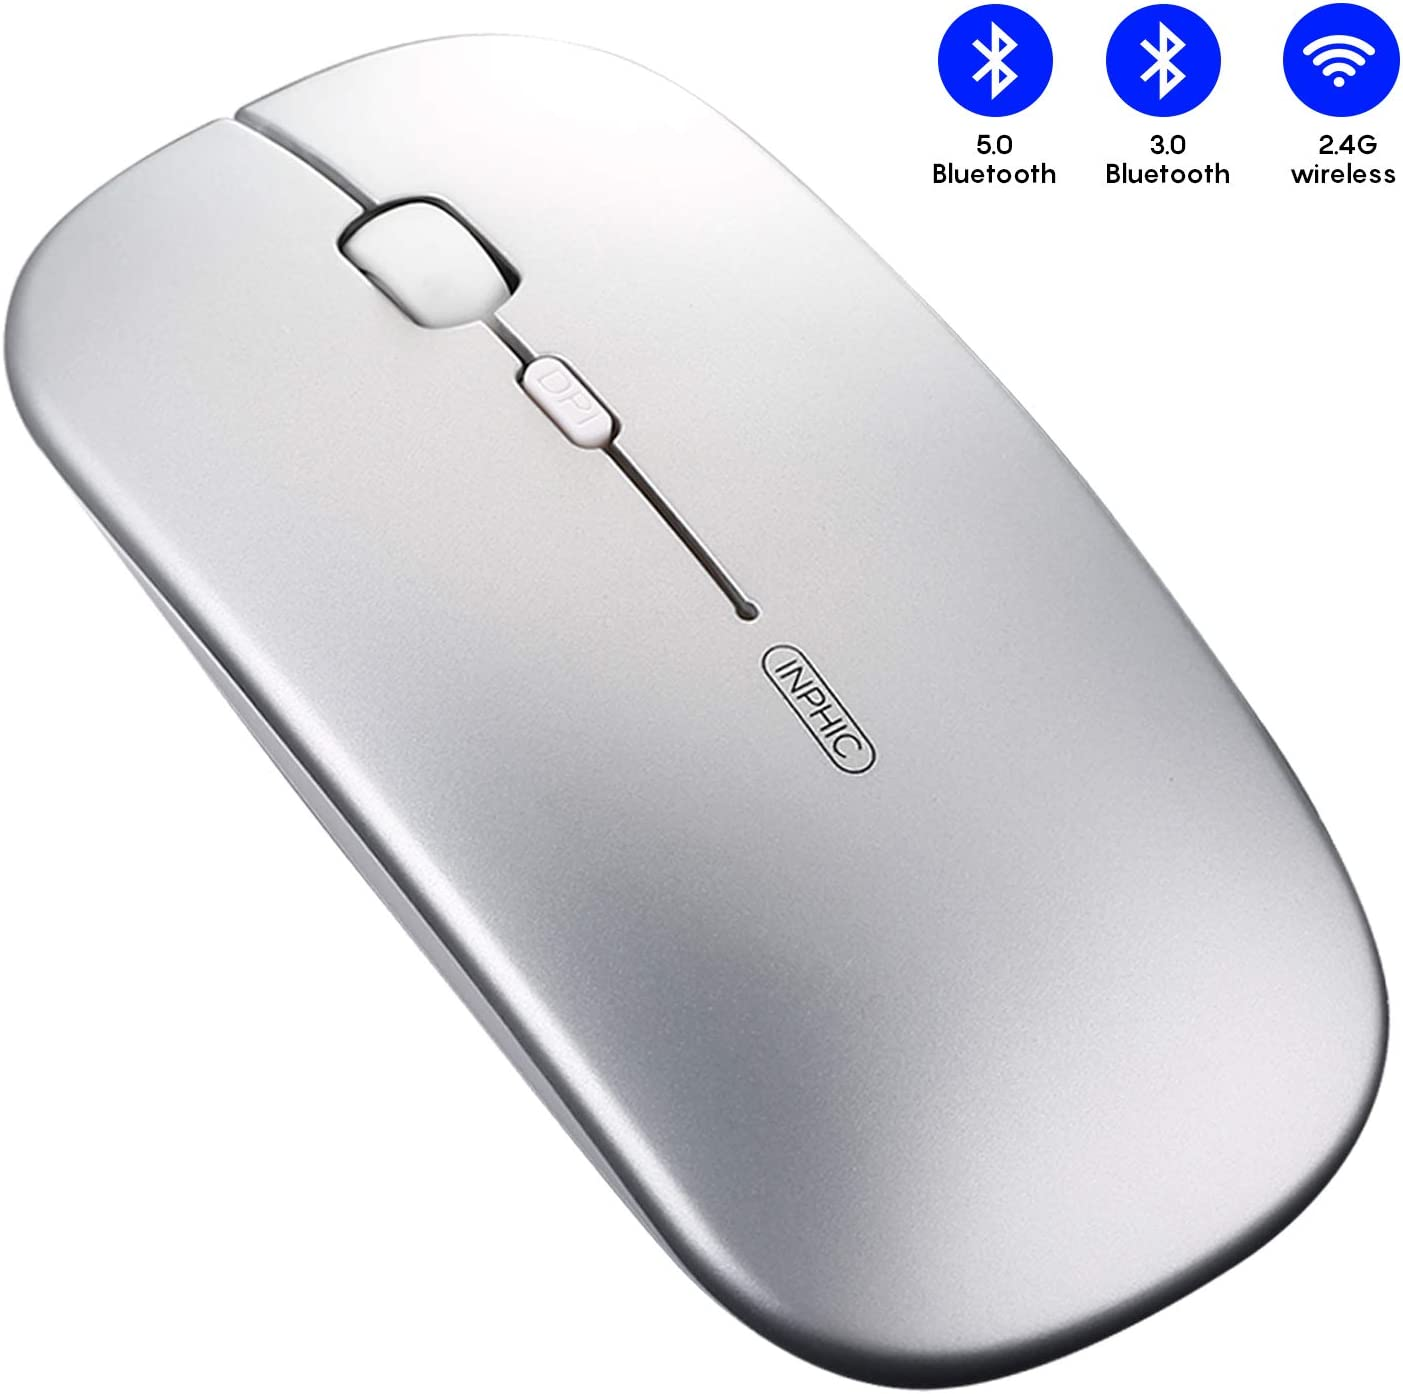 mouse para iPad MacBook Laptop Android Tablet, plateado